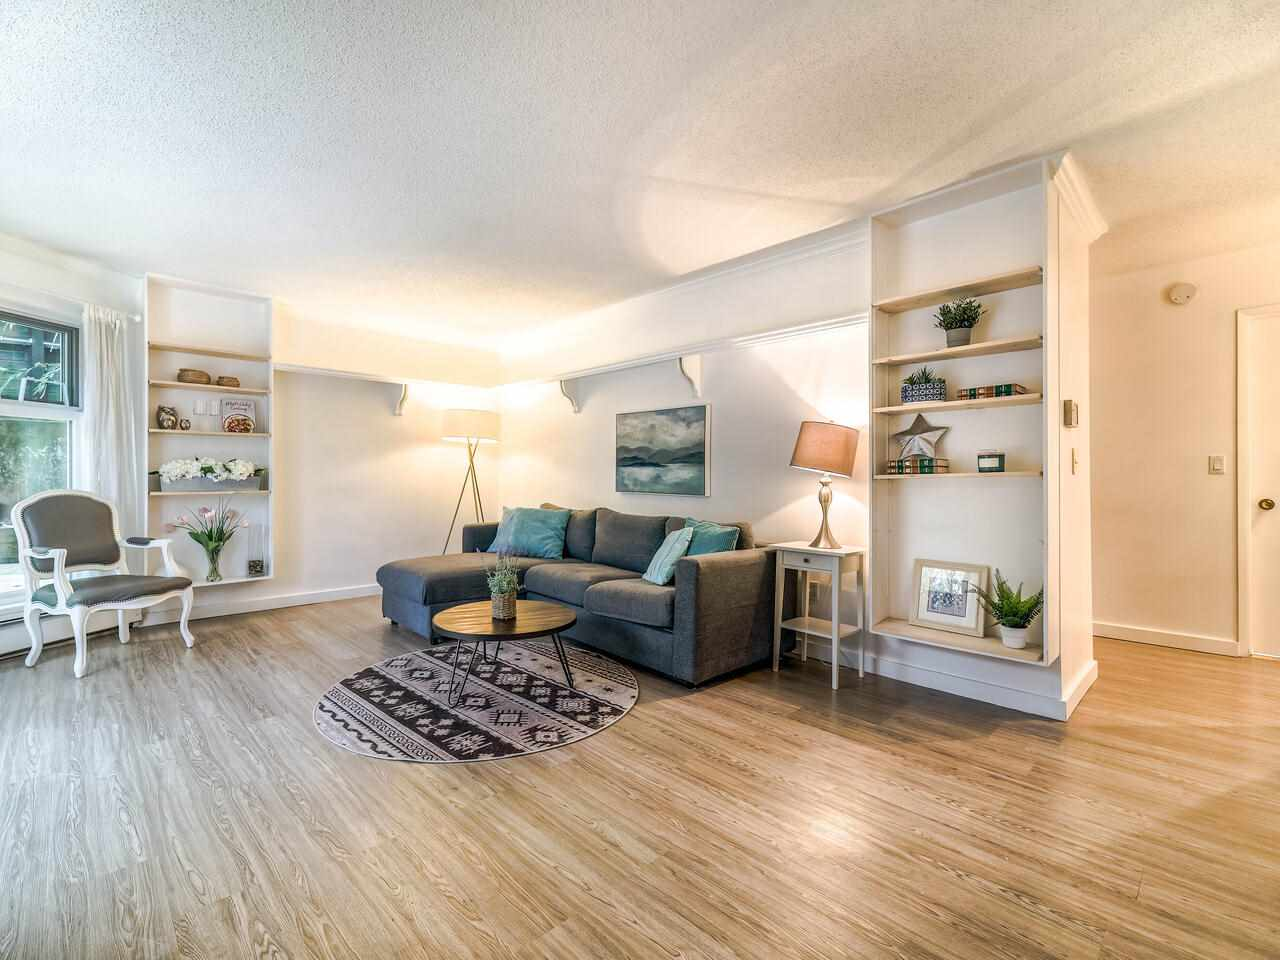 108 2250 OXFORD STREET - Hastings Apartment/Condo for sale, 1 Bedroom (R2528239) - #10